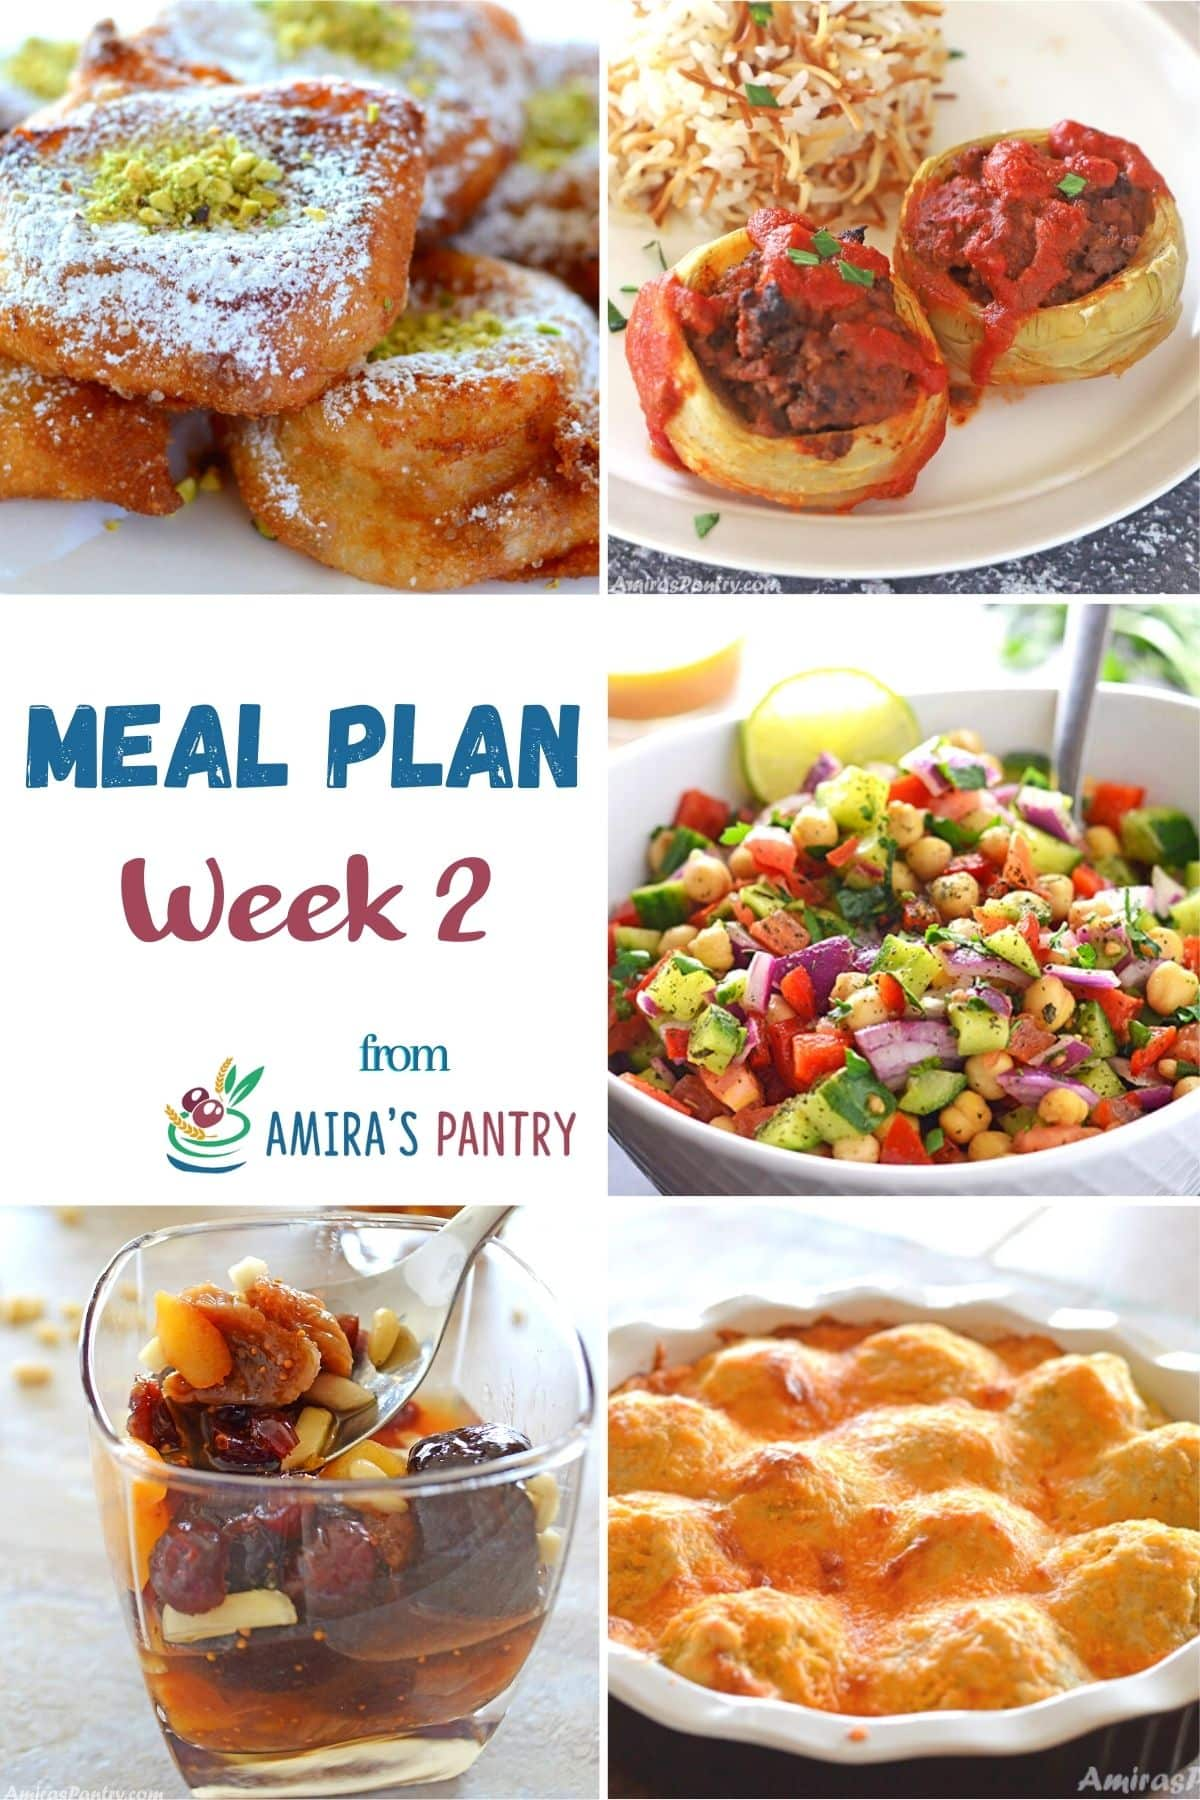 A collage of this week's meal plan dishes with focus on Ramadan recipes.